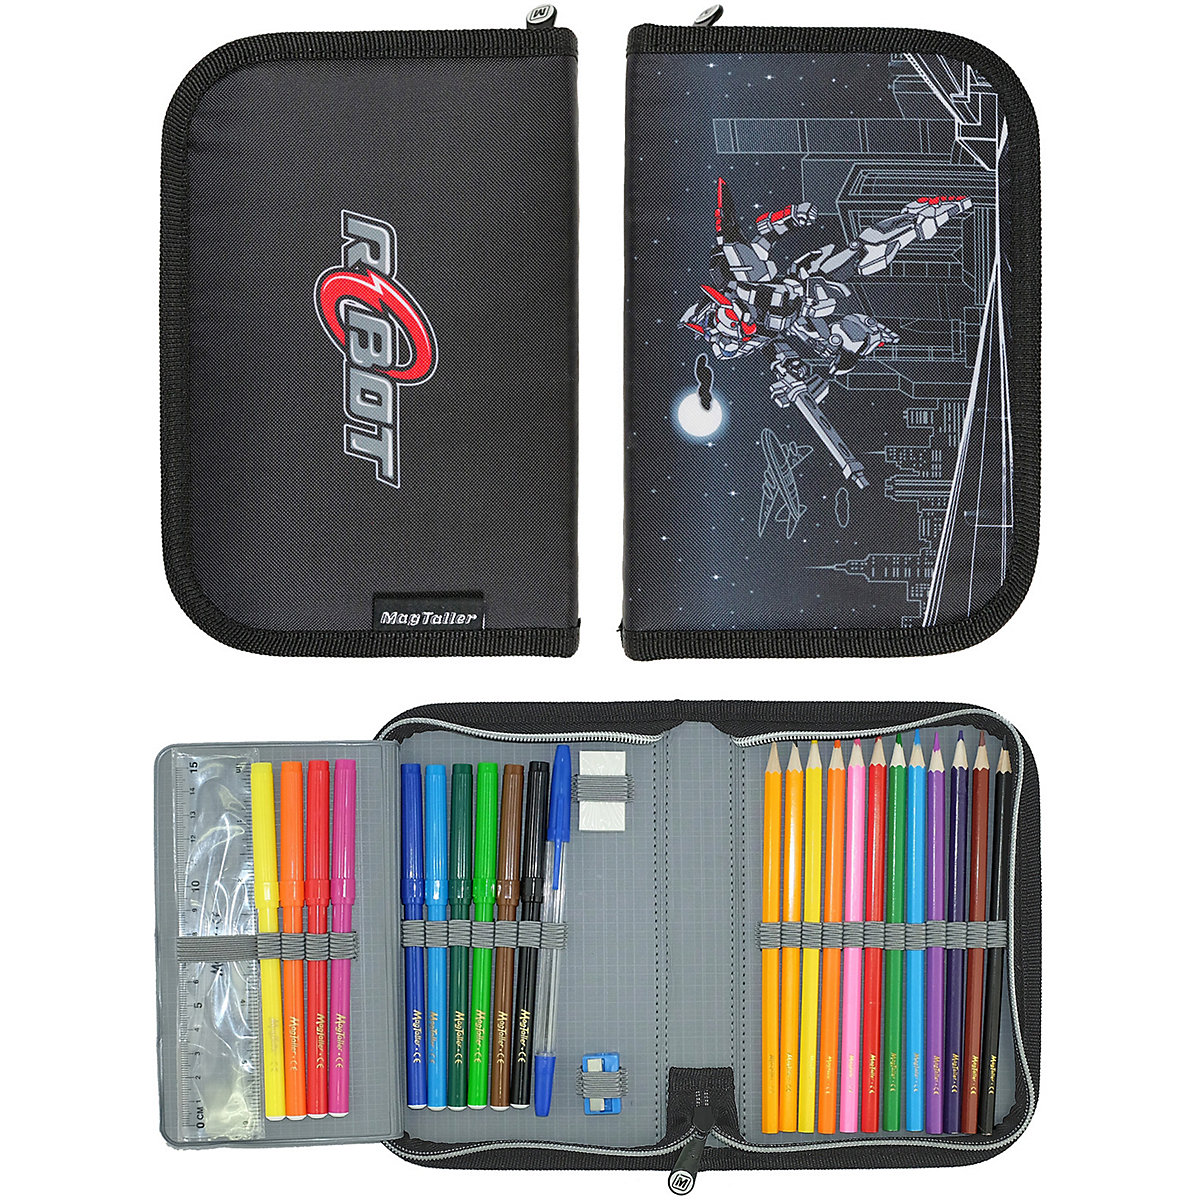 Pencil Cases MAGTALLER 11154888 school supplies stationery pencil cases for girls and boys drawing a5 dokibook notebook candy color agenda planner organizer diary with rope gift notepad stationery office school supplies